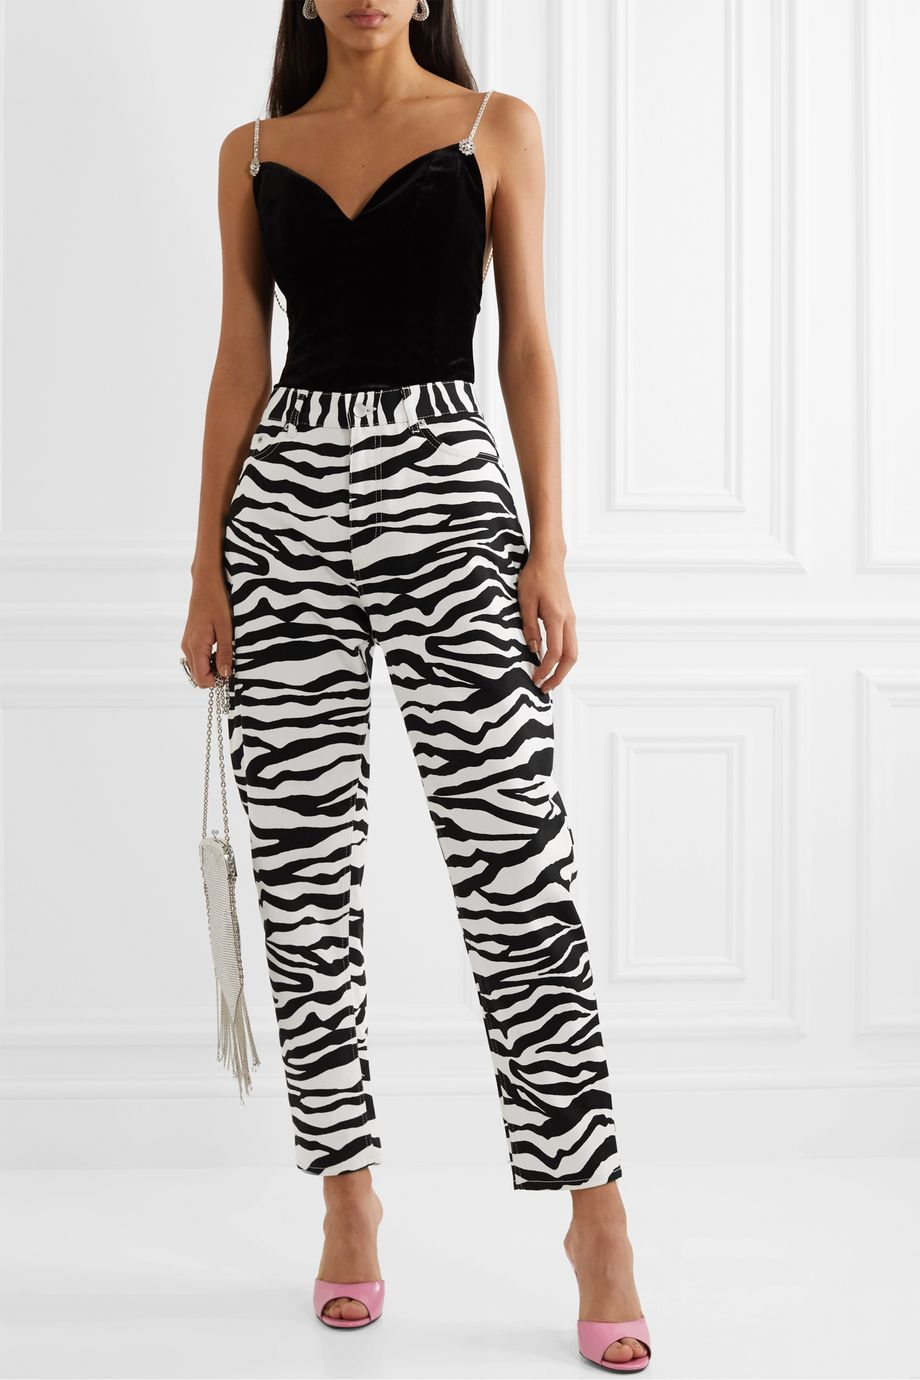 The Attico Cropped zebra-print high-rise tapered jeans